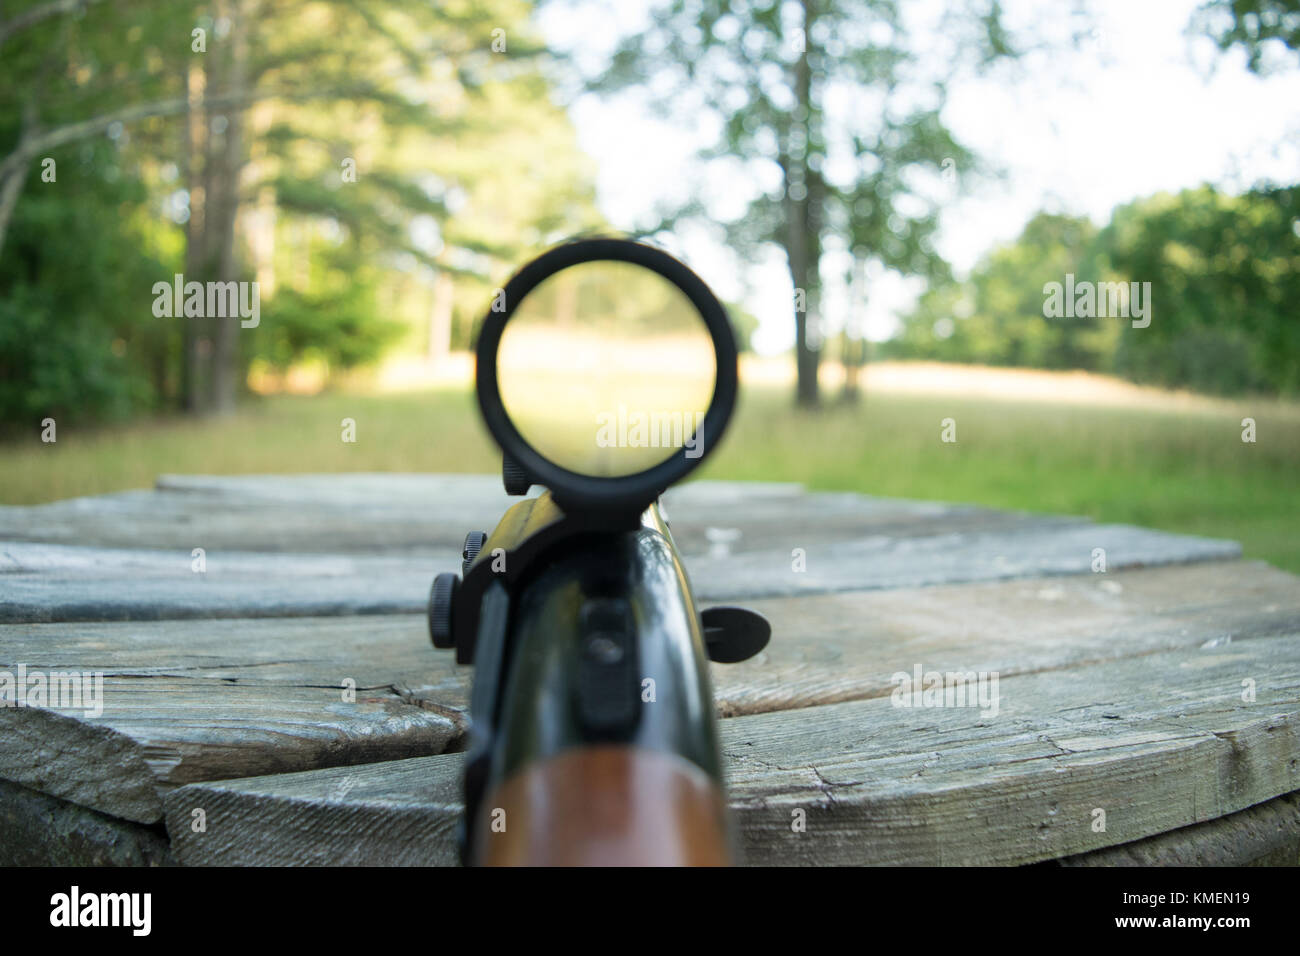 Looking Down Barrel Of Gun Stock Photos & Looking Down